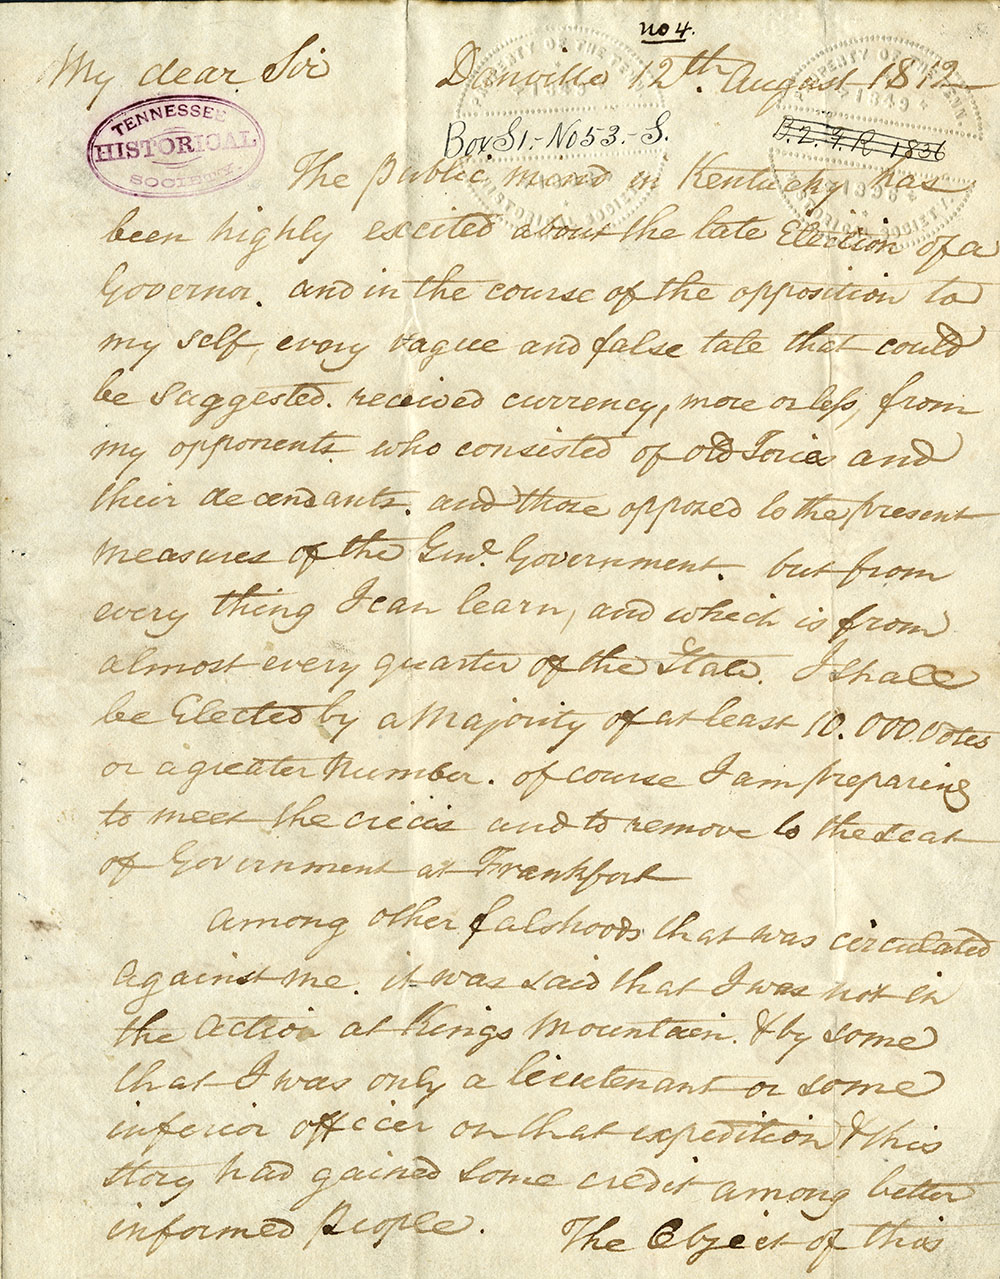 Letter from Isaac Shelby to John Sevier about Kings Mountain